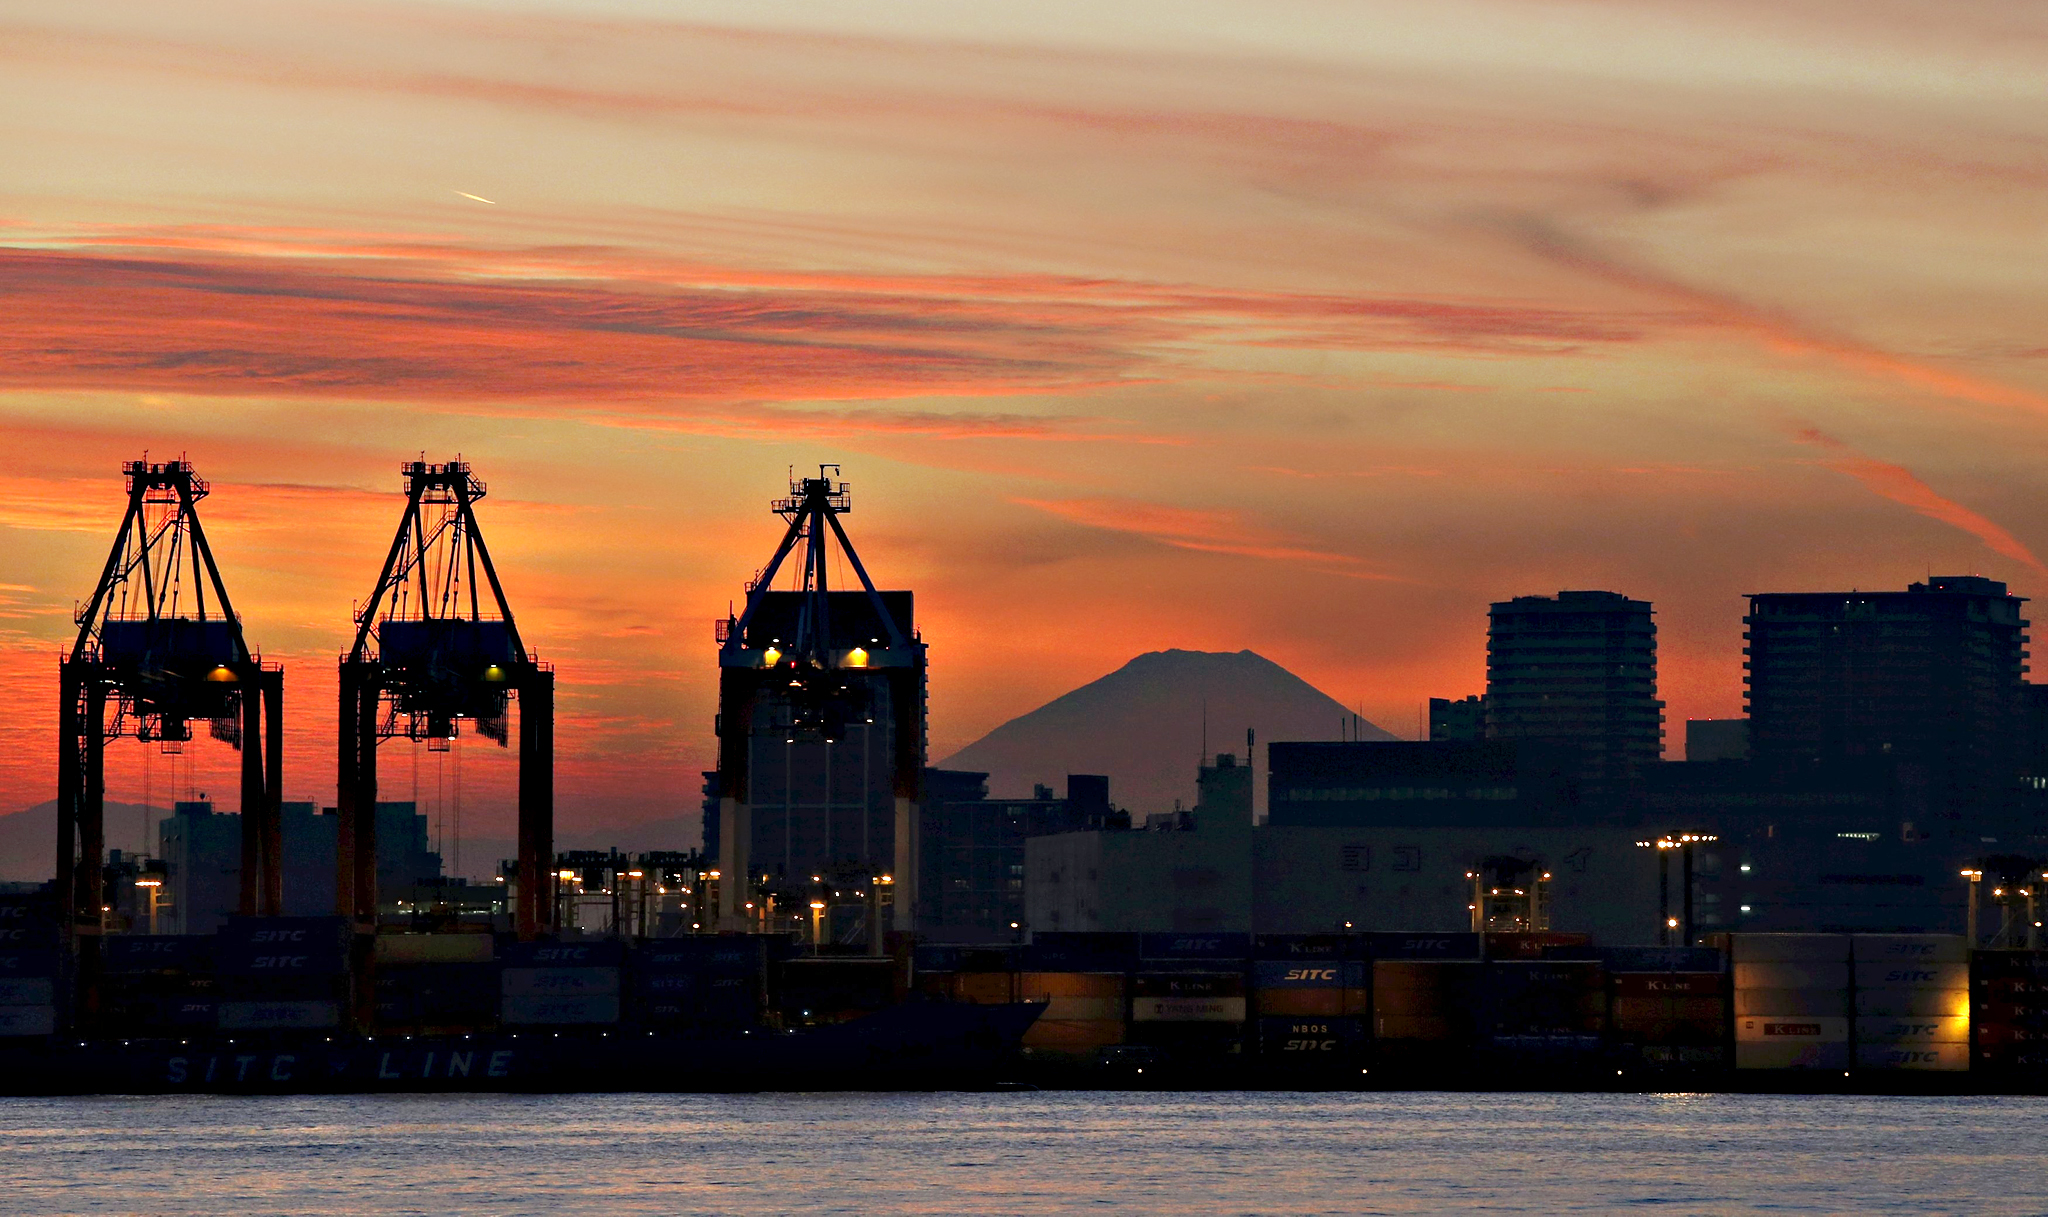 Mount Fuji is seen between cranes and buildings during sunset at a port in Tokyo, Japan, on Wednesday. Japan's core machinery orders unexpectedly jumped in October by the most since March 2014